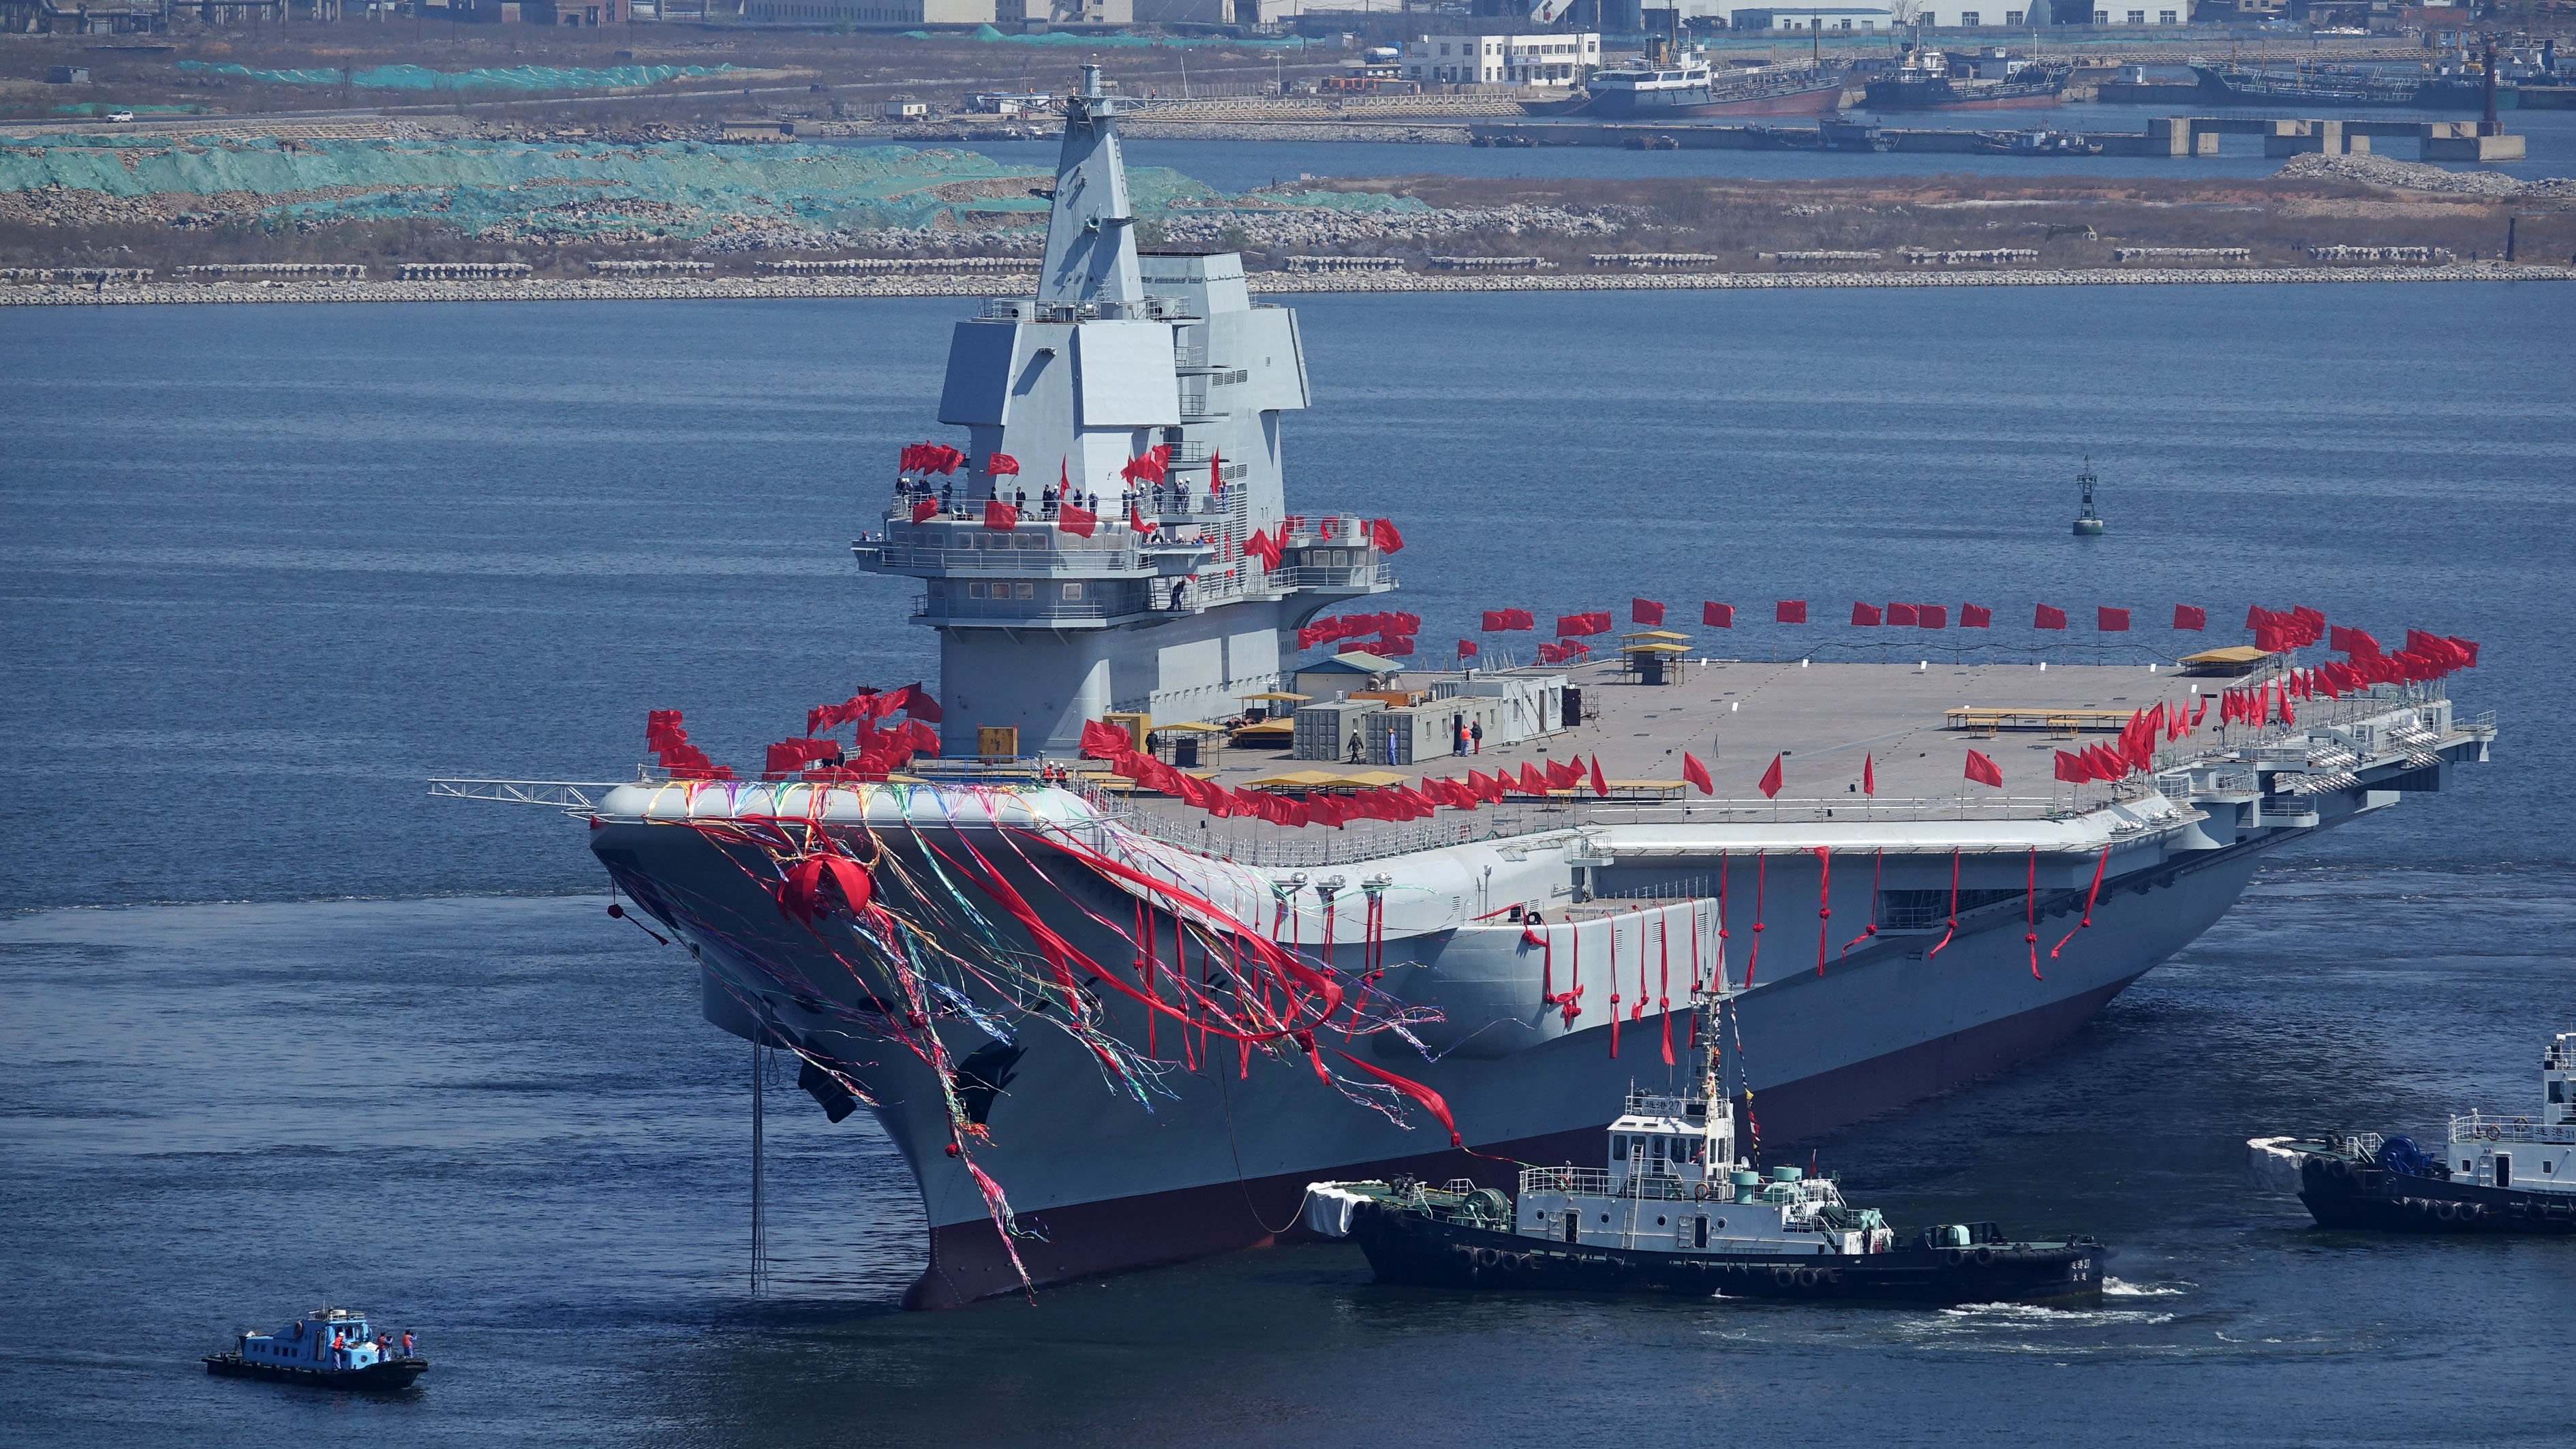 China's second aircraft carrier, is seen during a launch ceremony at Dalian shipyard in Dalian, northeast China's Liaoning Province, April 26, 2017.